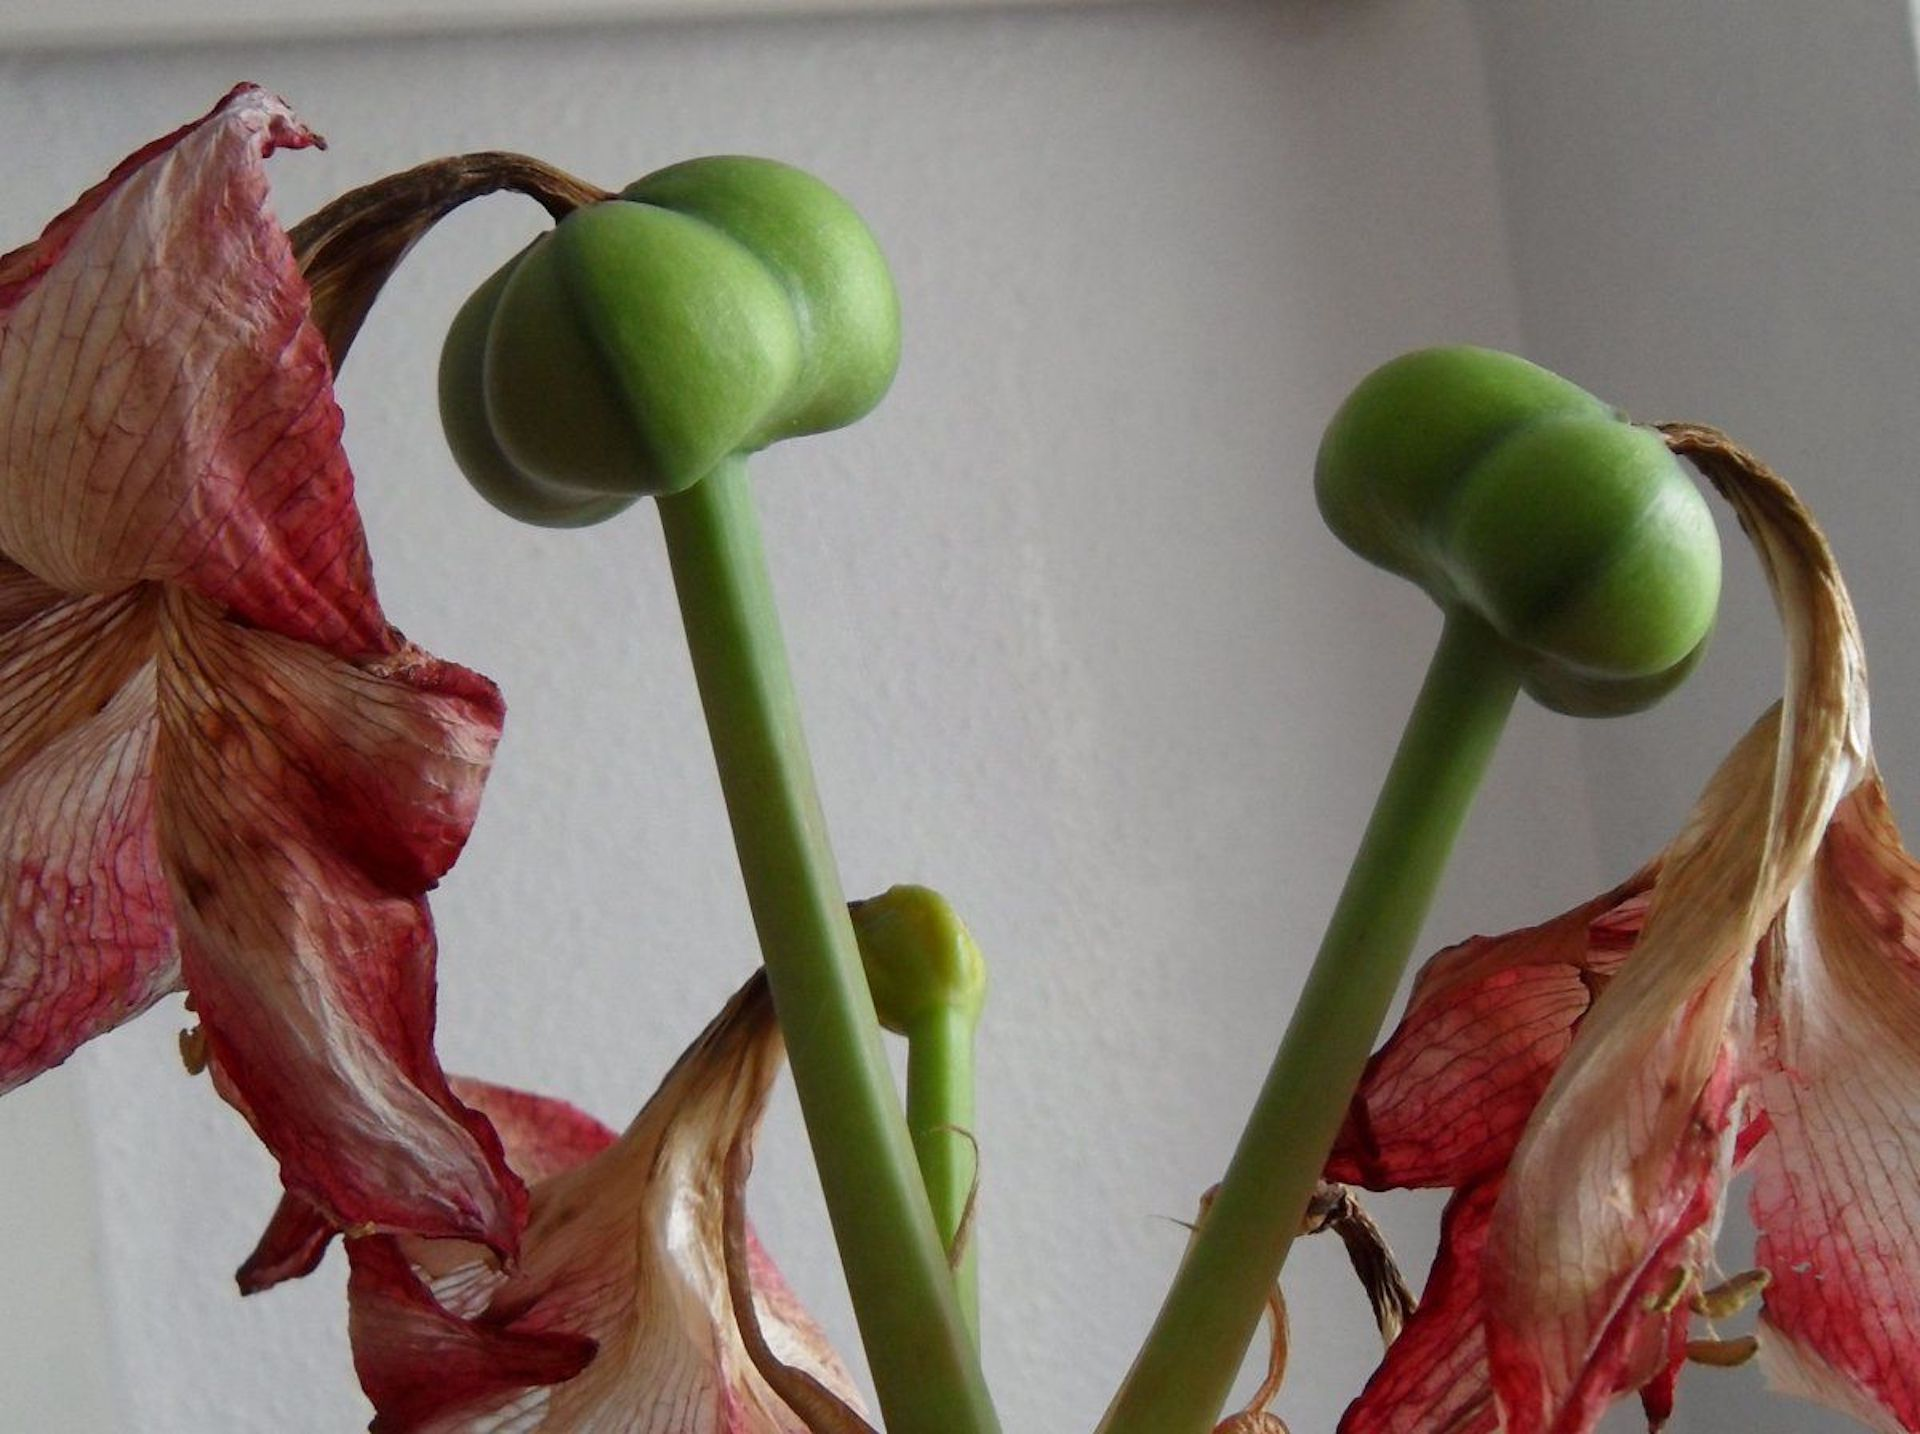 Green capsules forming on an amaryllis.